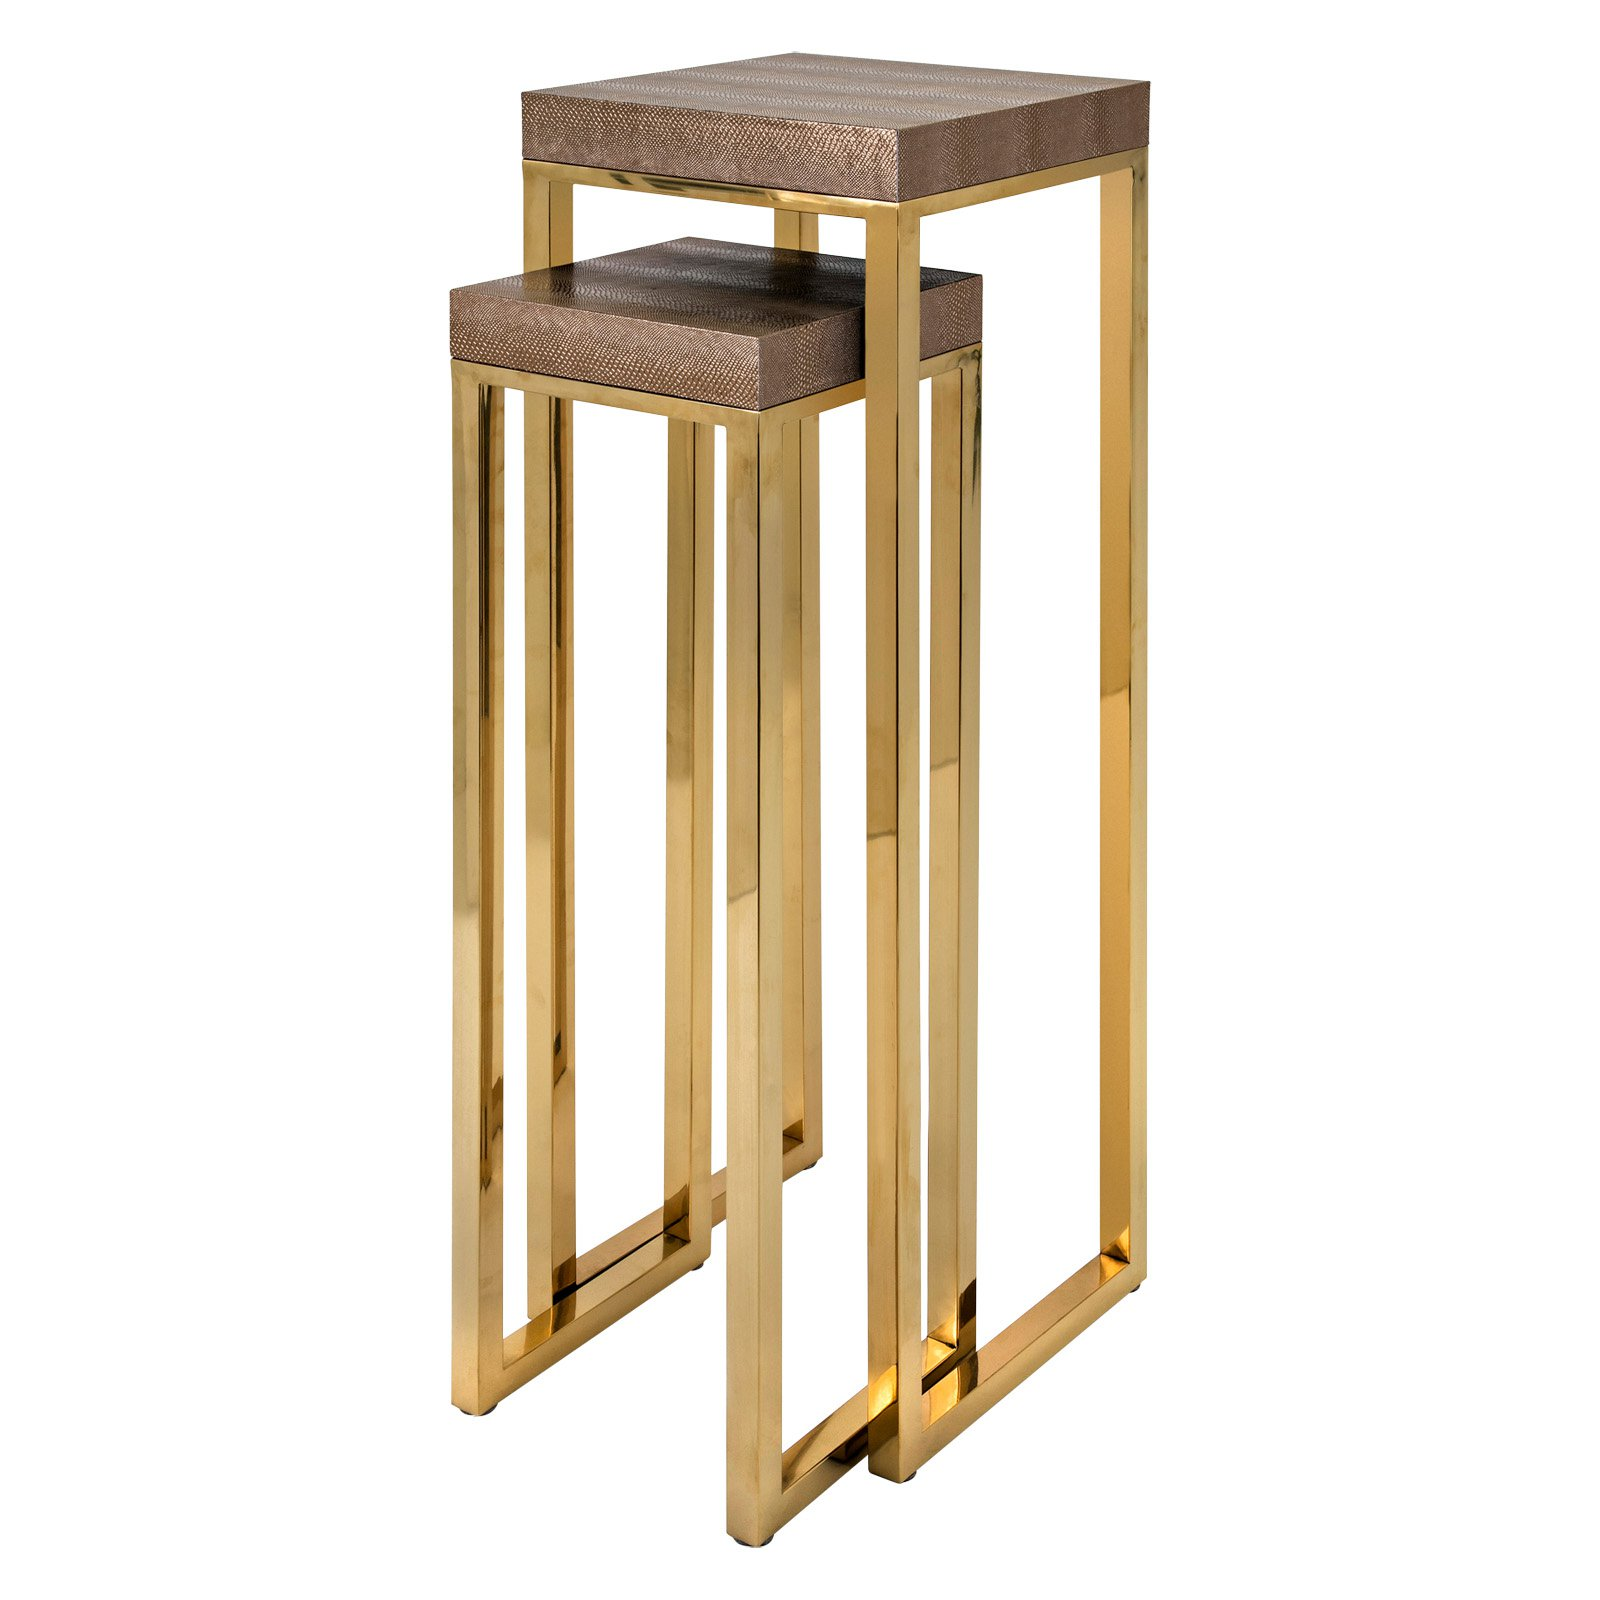 Imax Markov Plant Stands - Set of 2